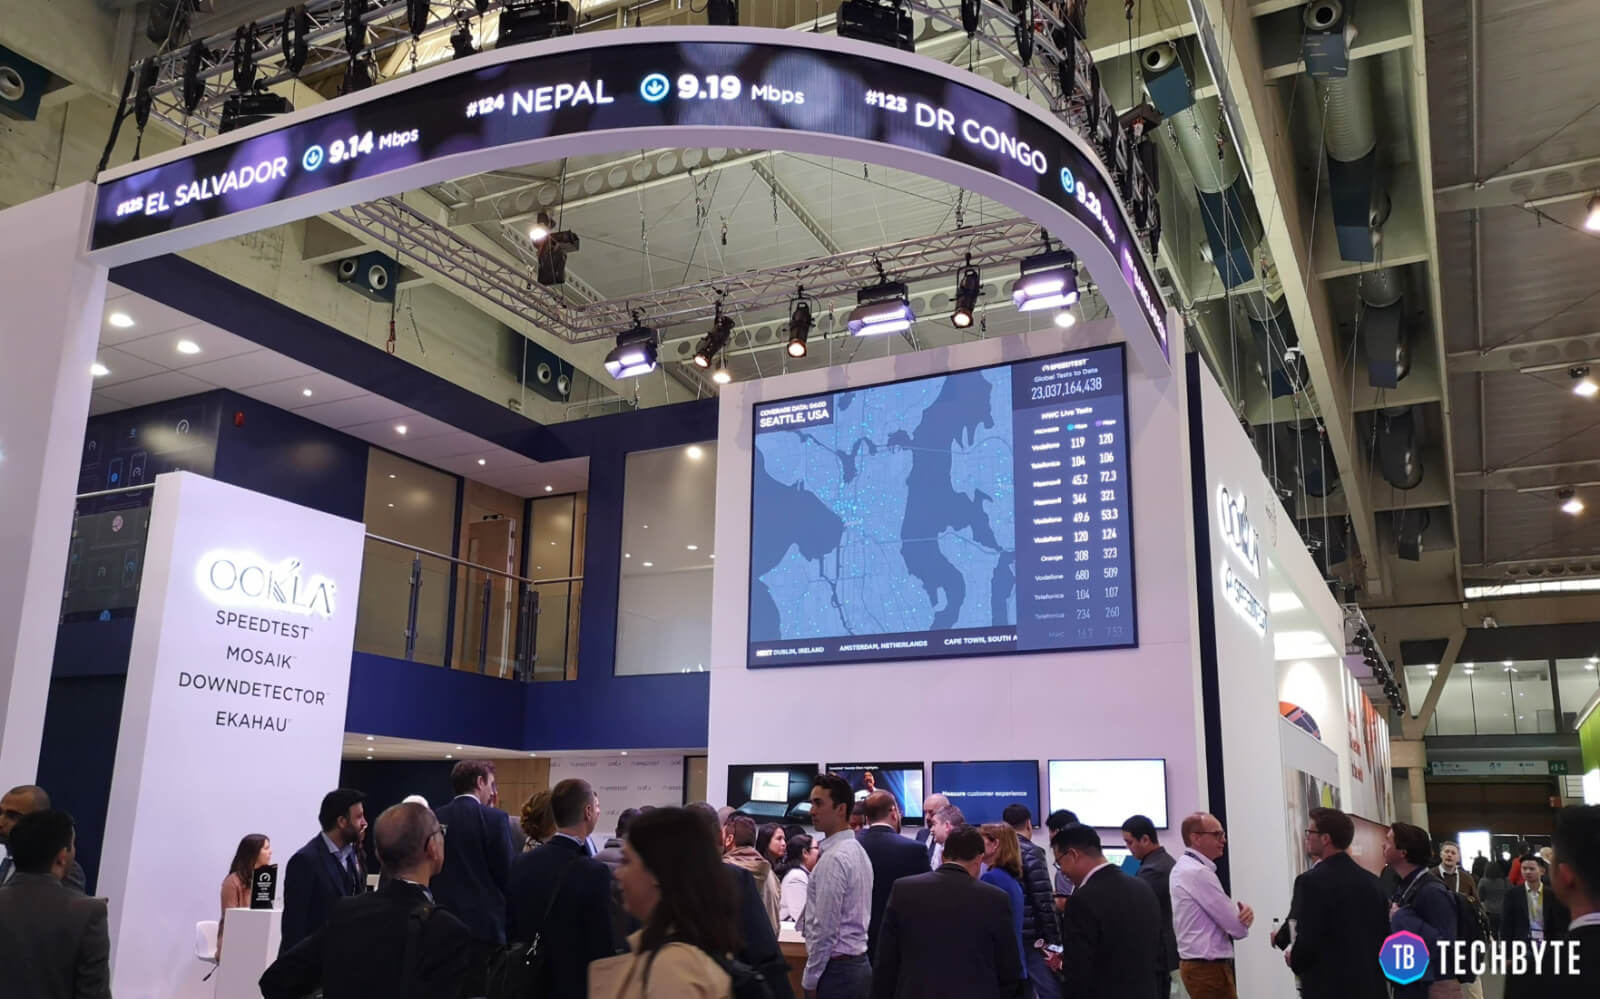 ookla (MWC)